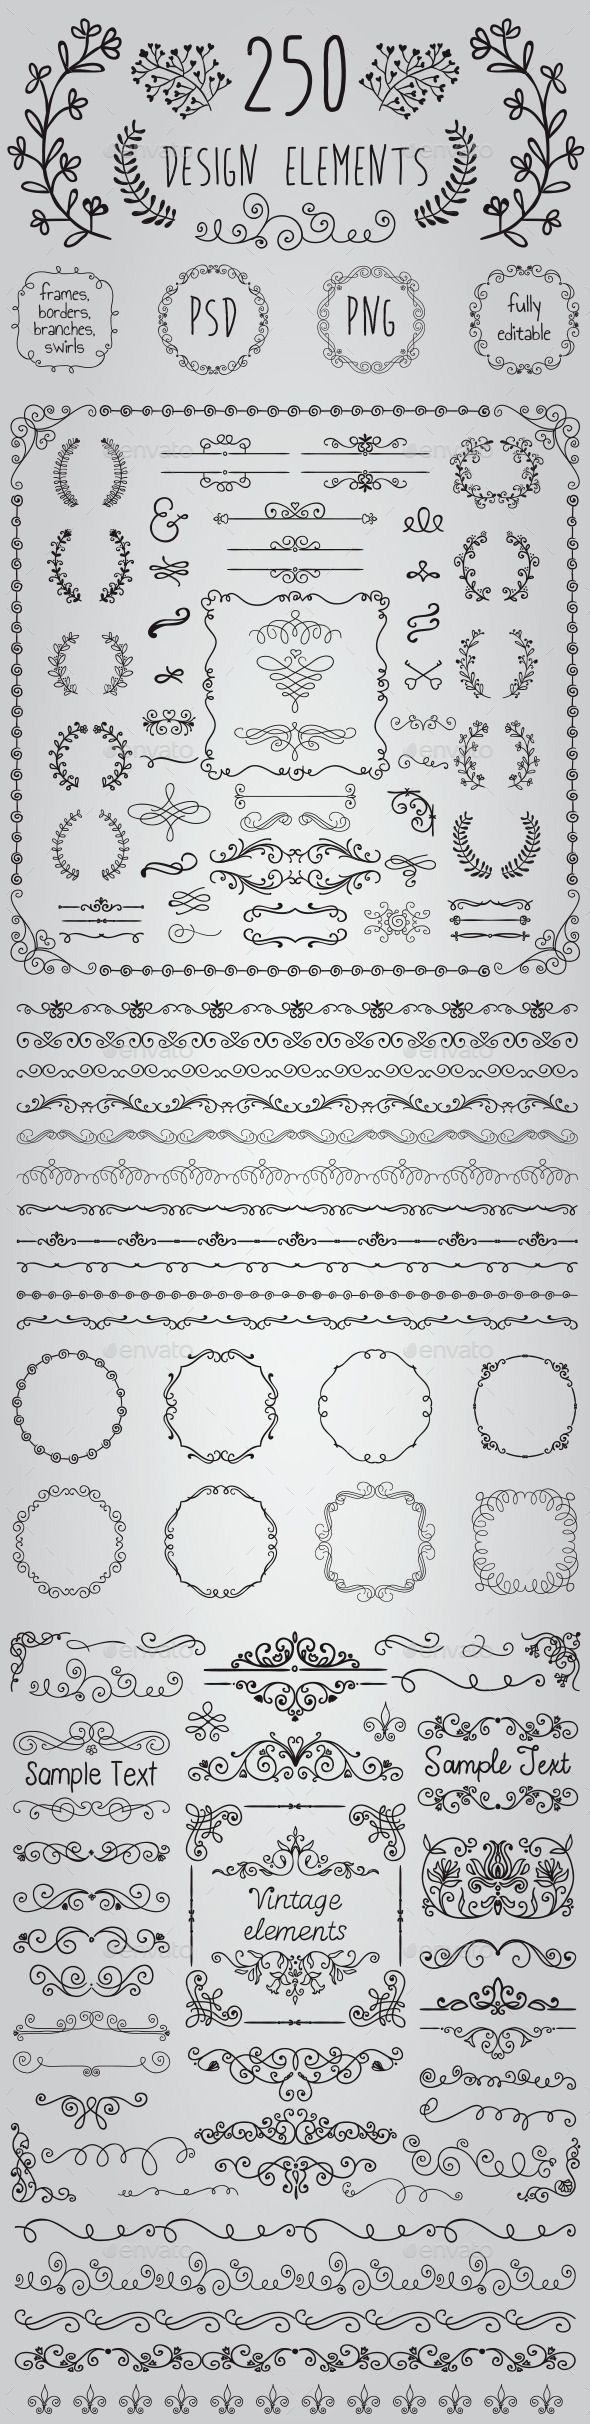 best notes images on pinterest draw drawing and drawings